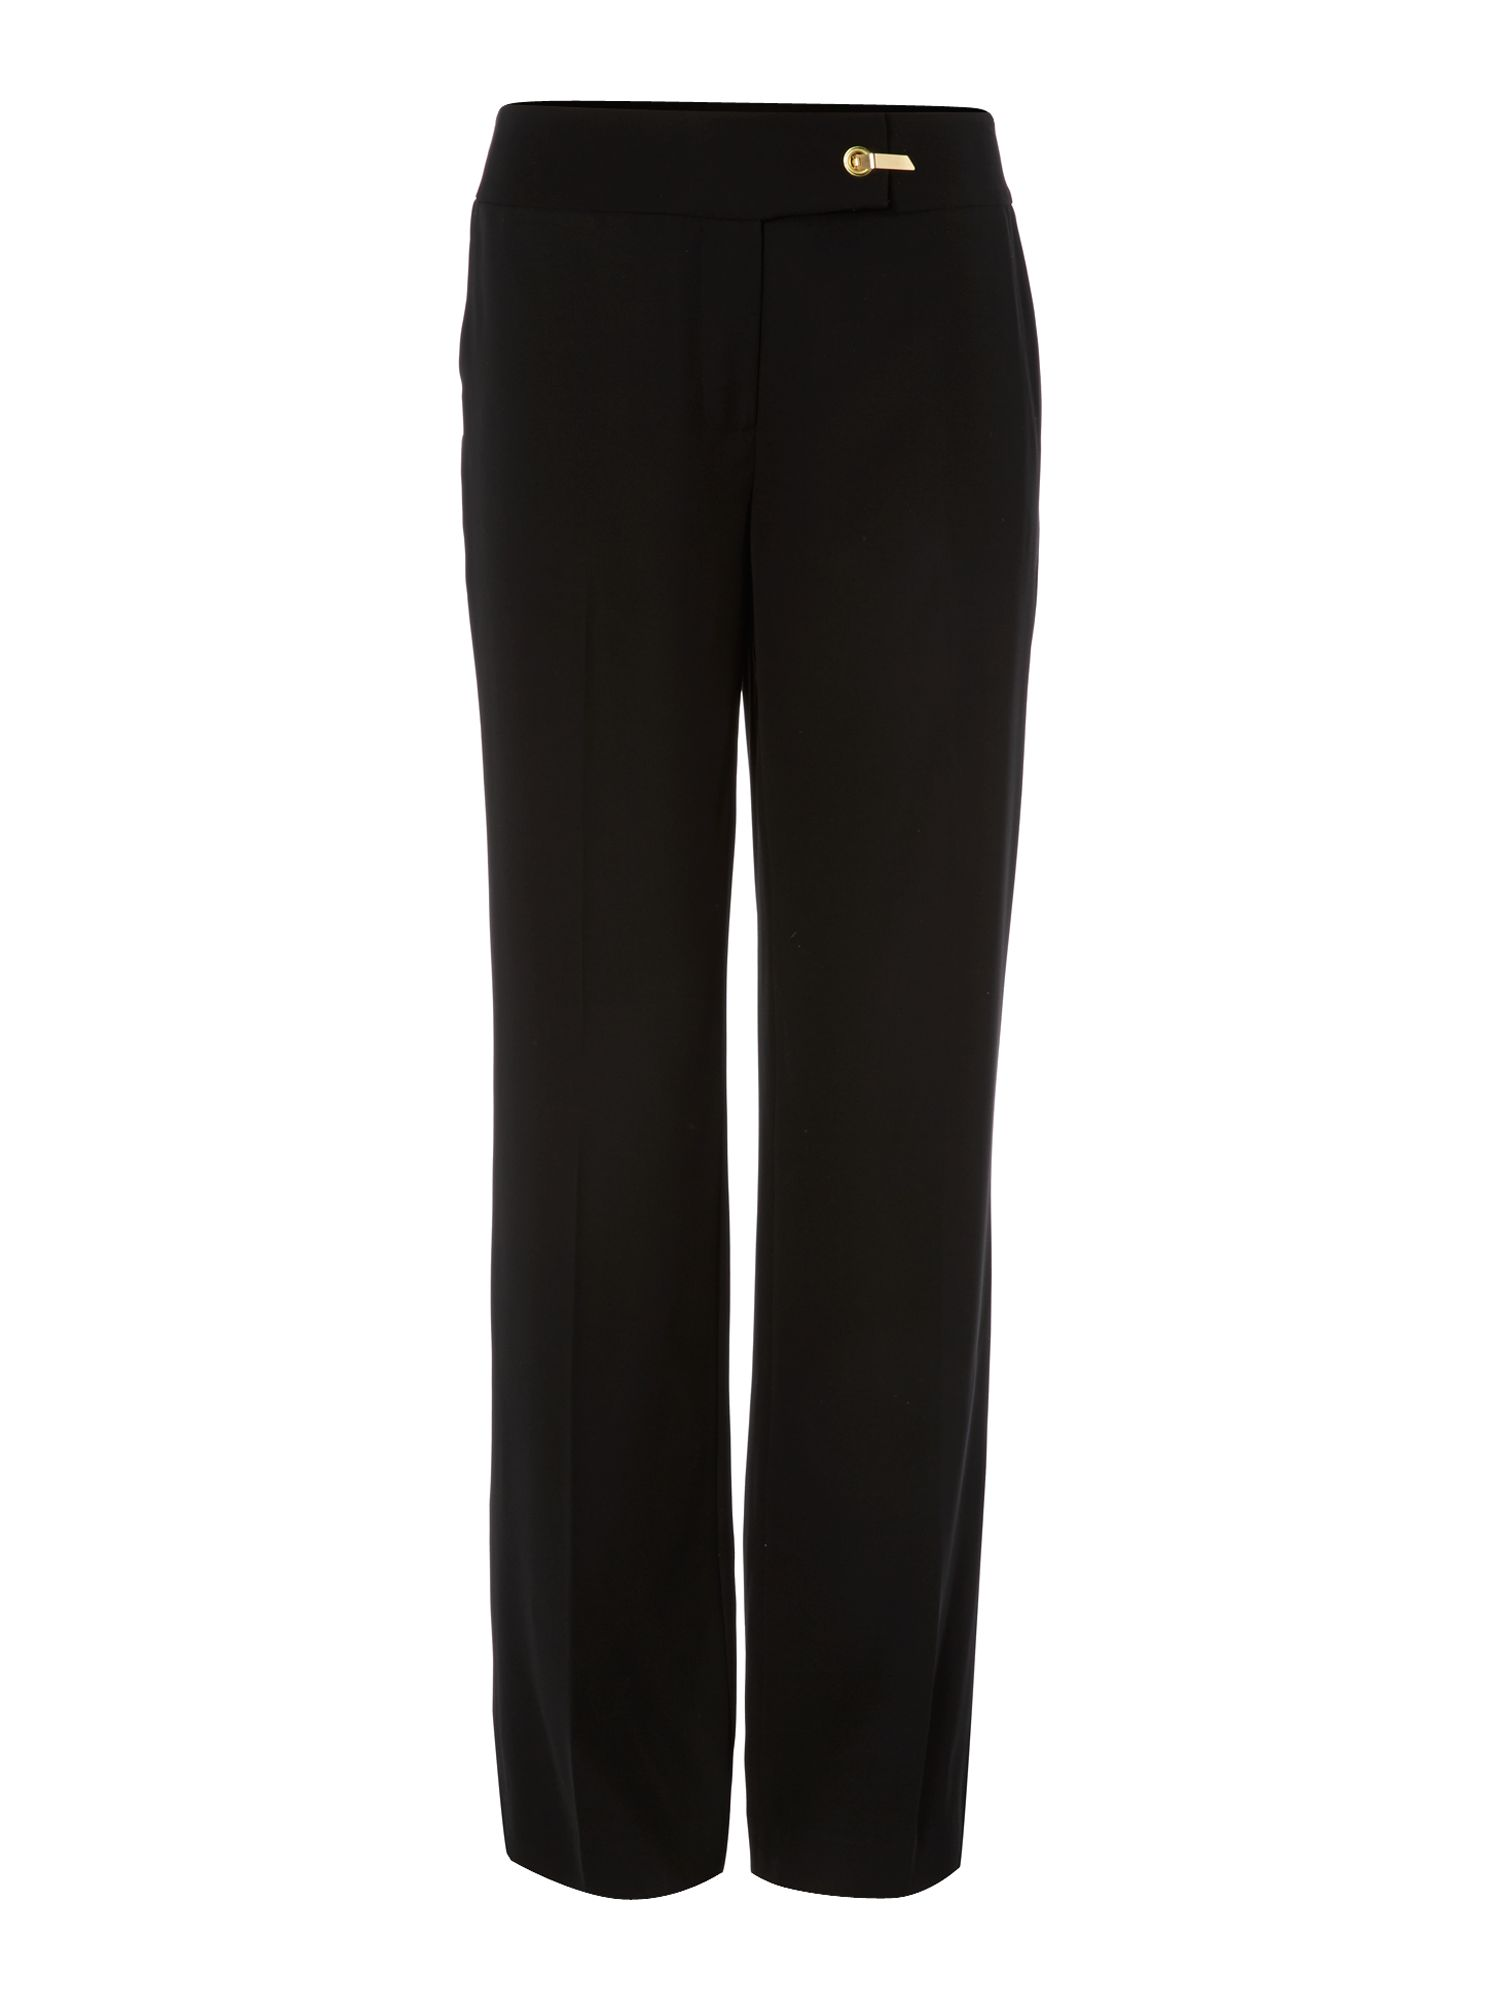 Susan buckle trim trouser- 30